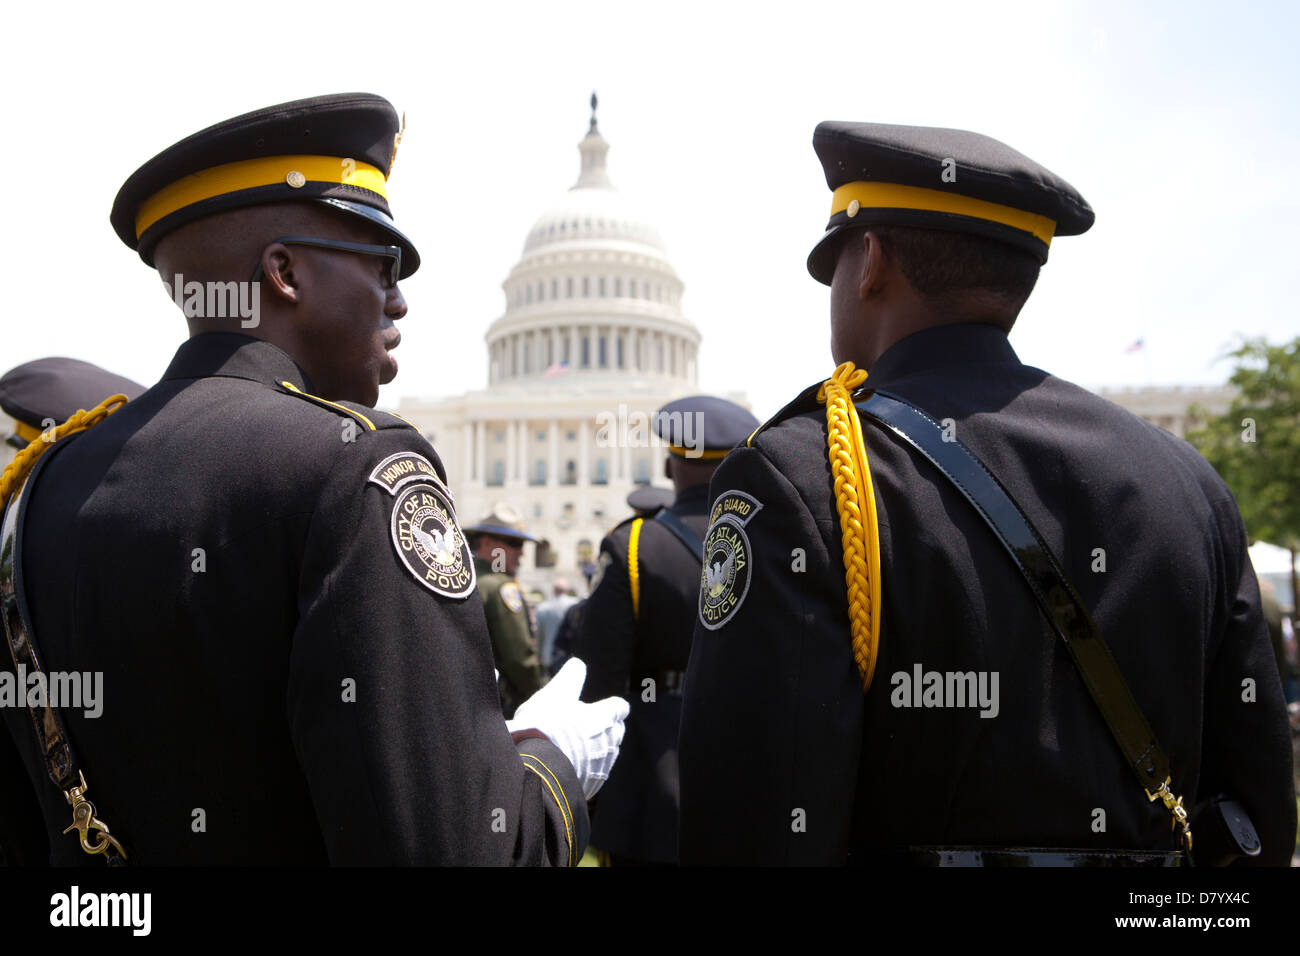 Atlanta police (Atlanta Georgia) at Police Week 2013 - Washington, DC USA - Stock Image